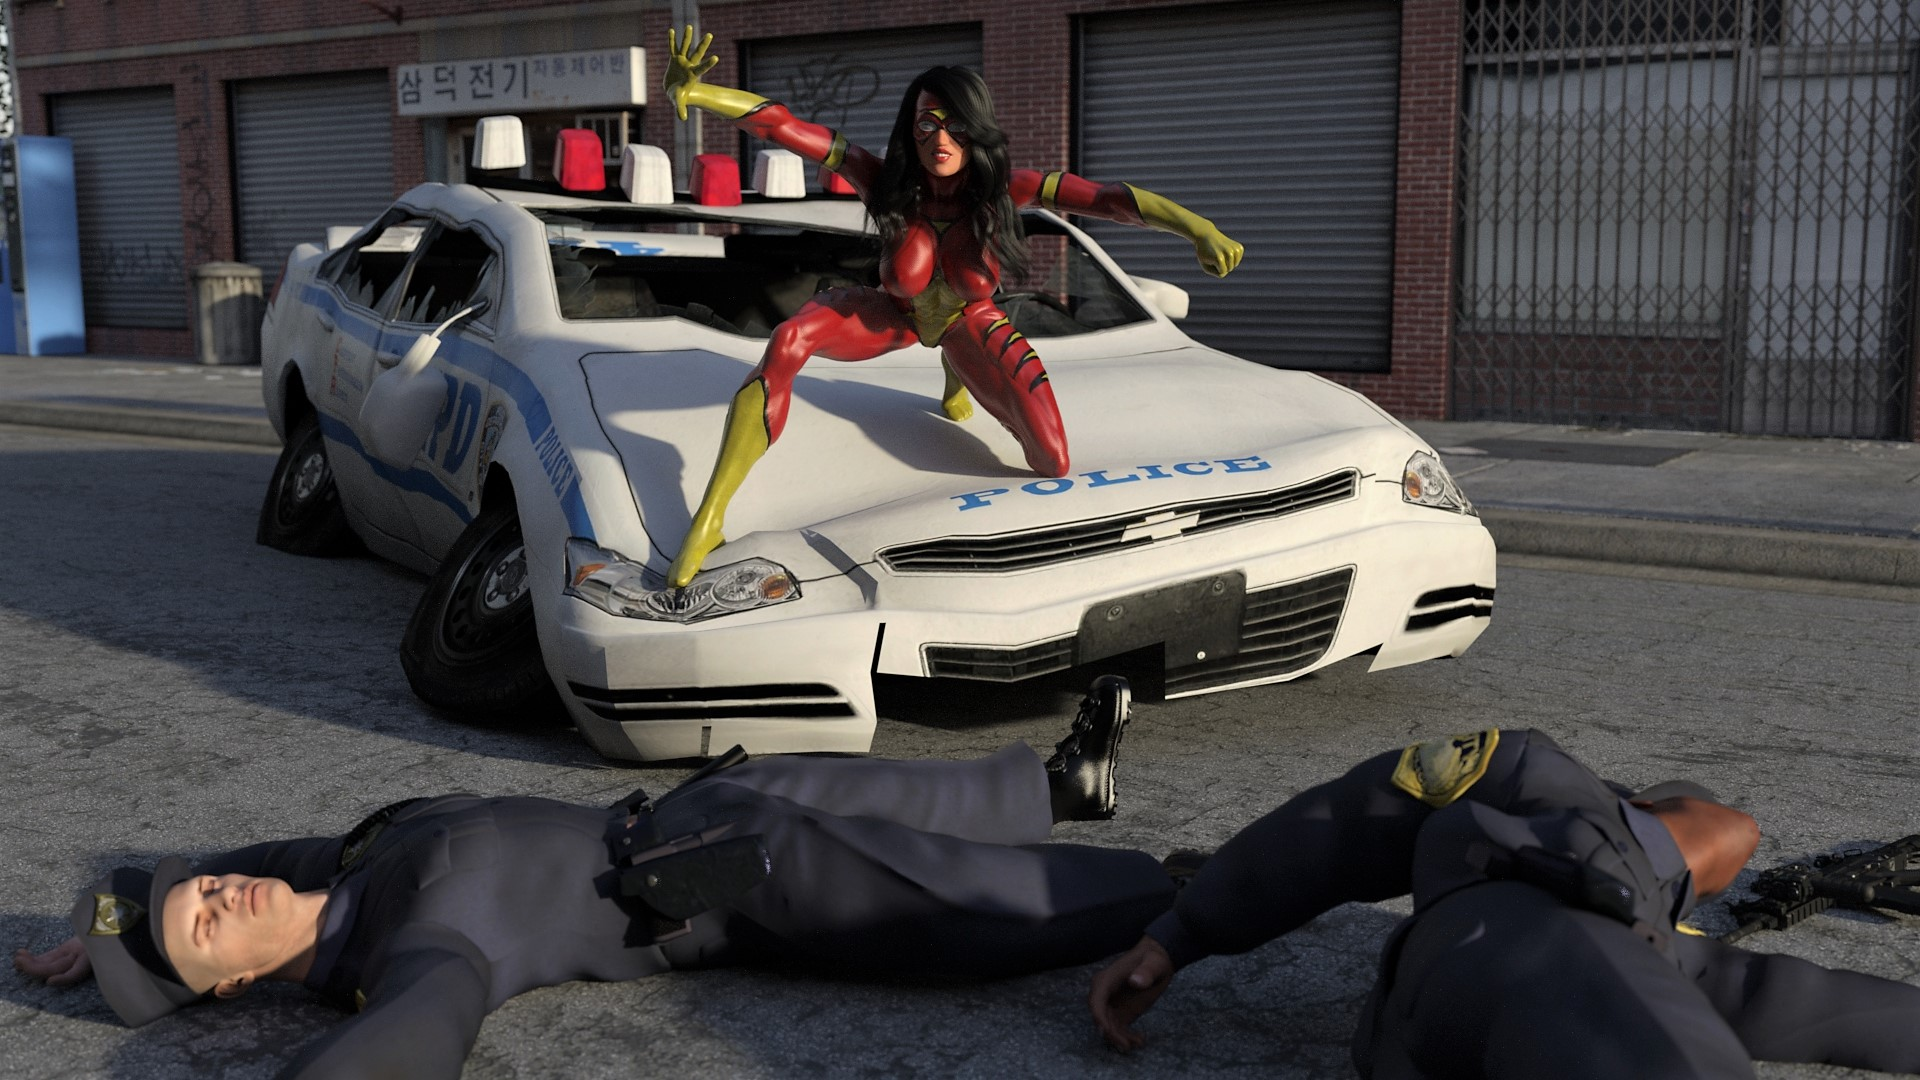 spiderwoman police brutality 19 by mannameded-db7vly6